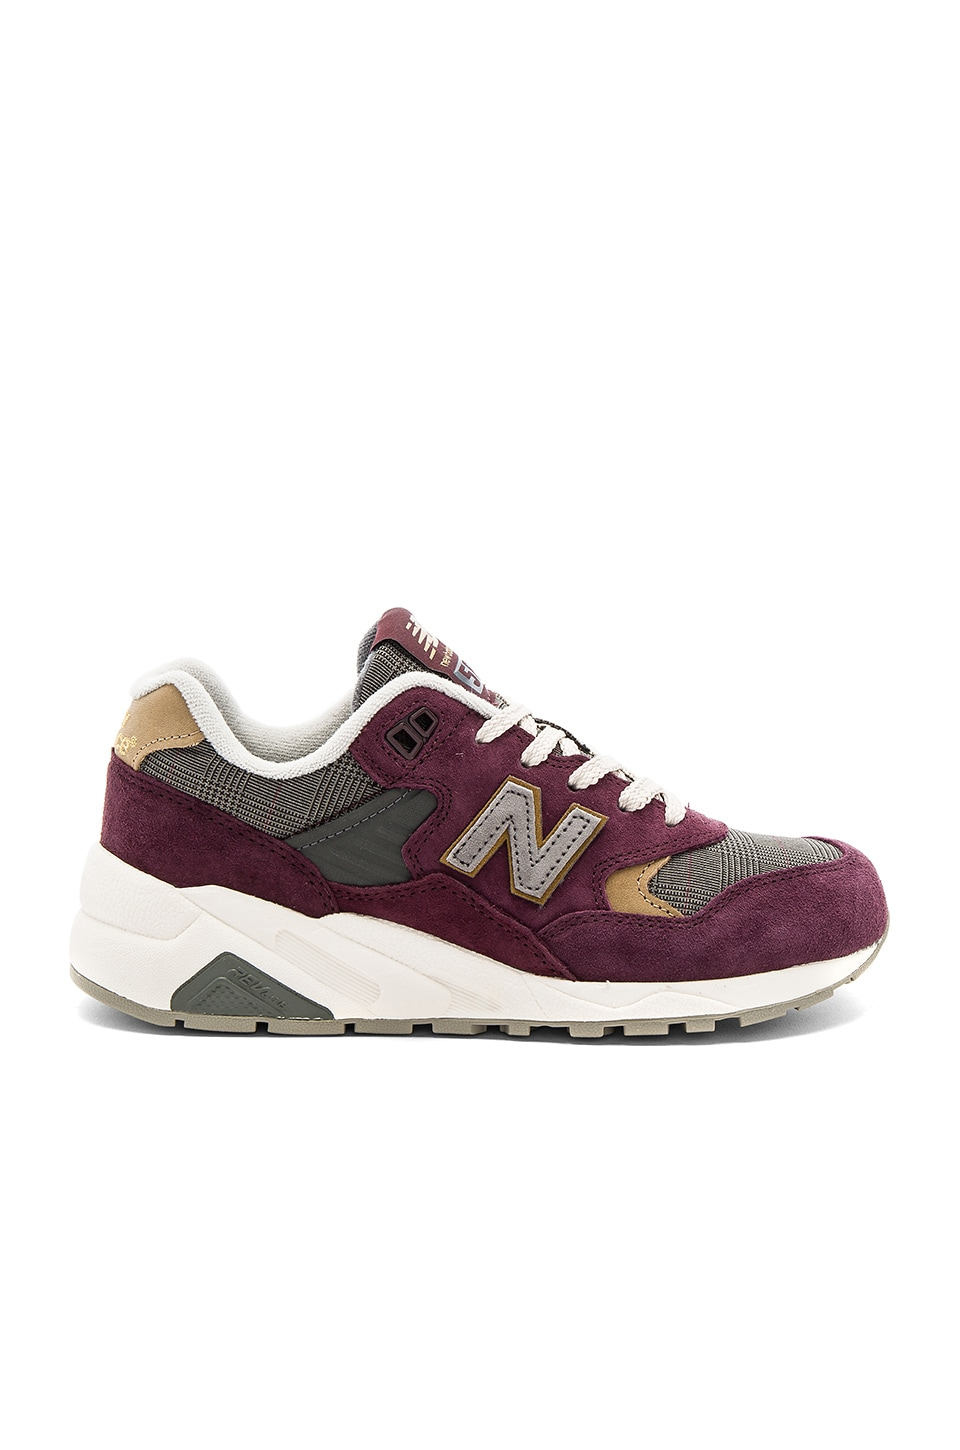 New Balance Capsule Sneaker in Supernova Red